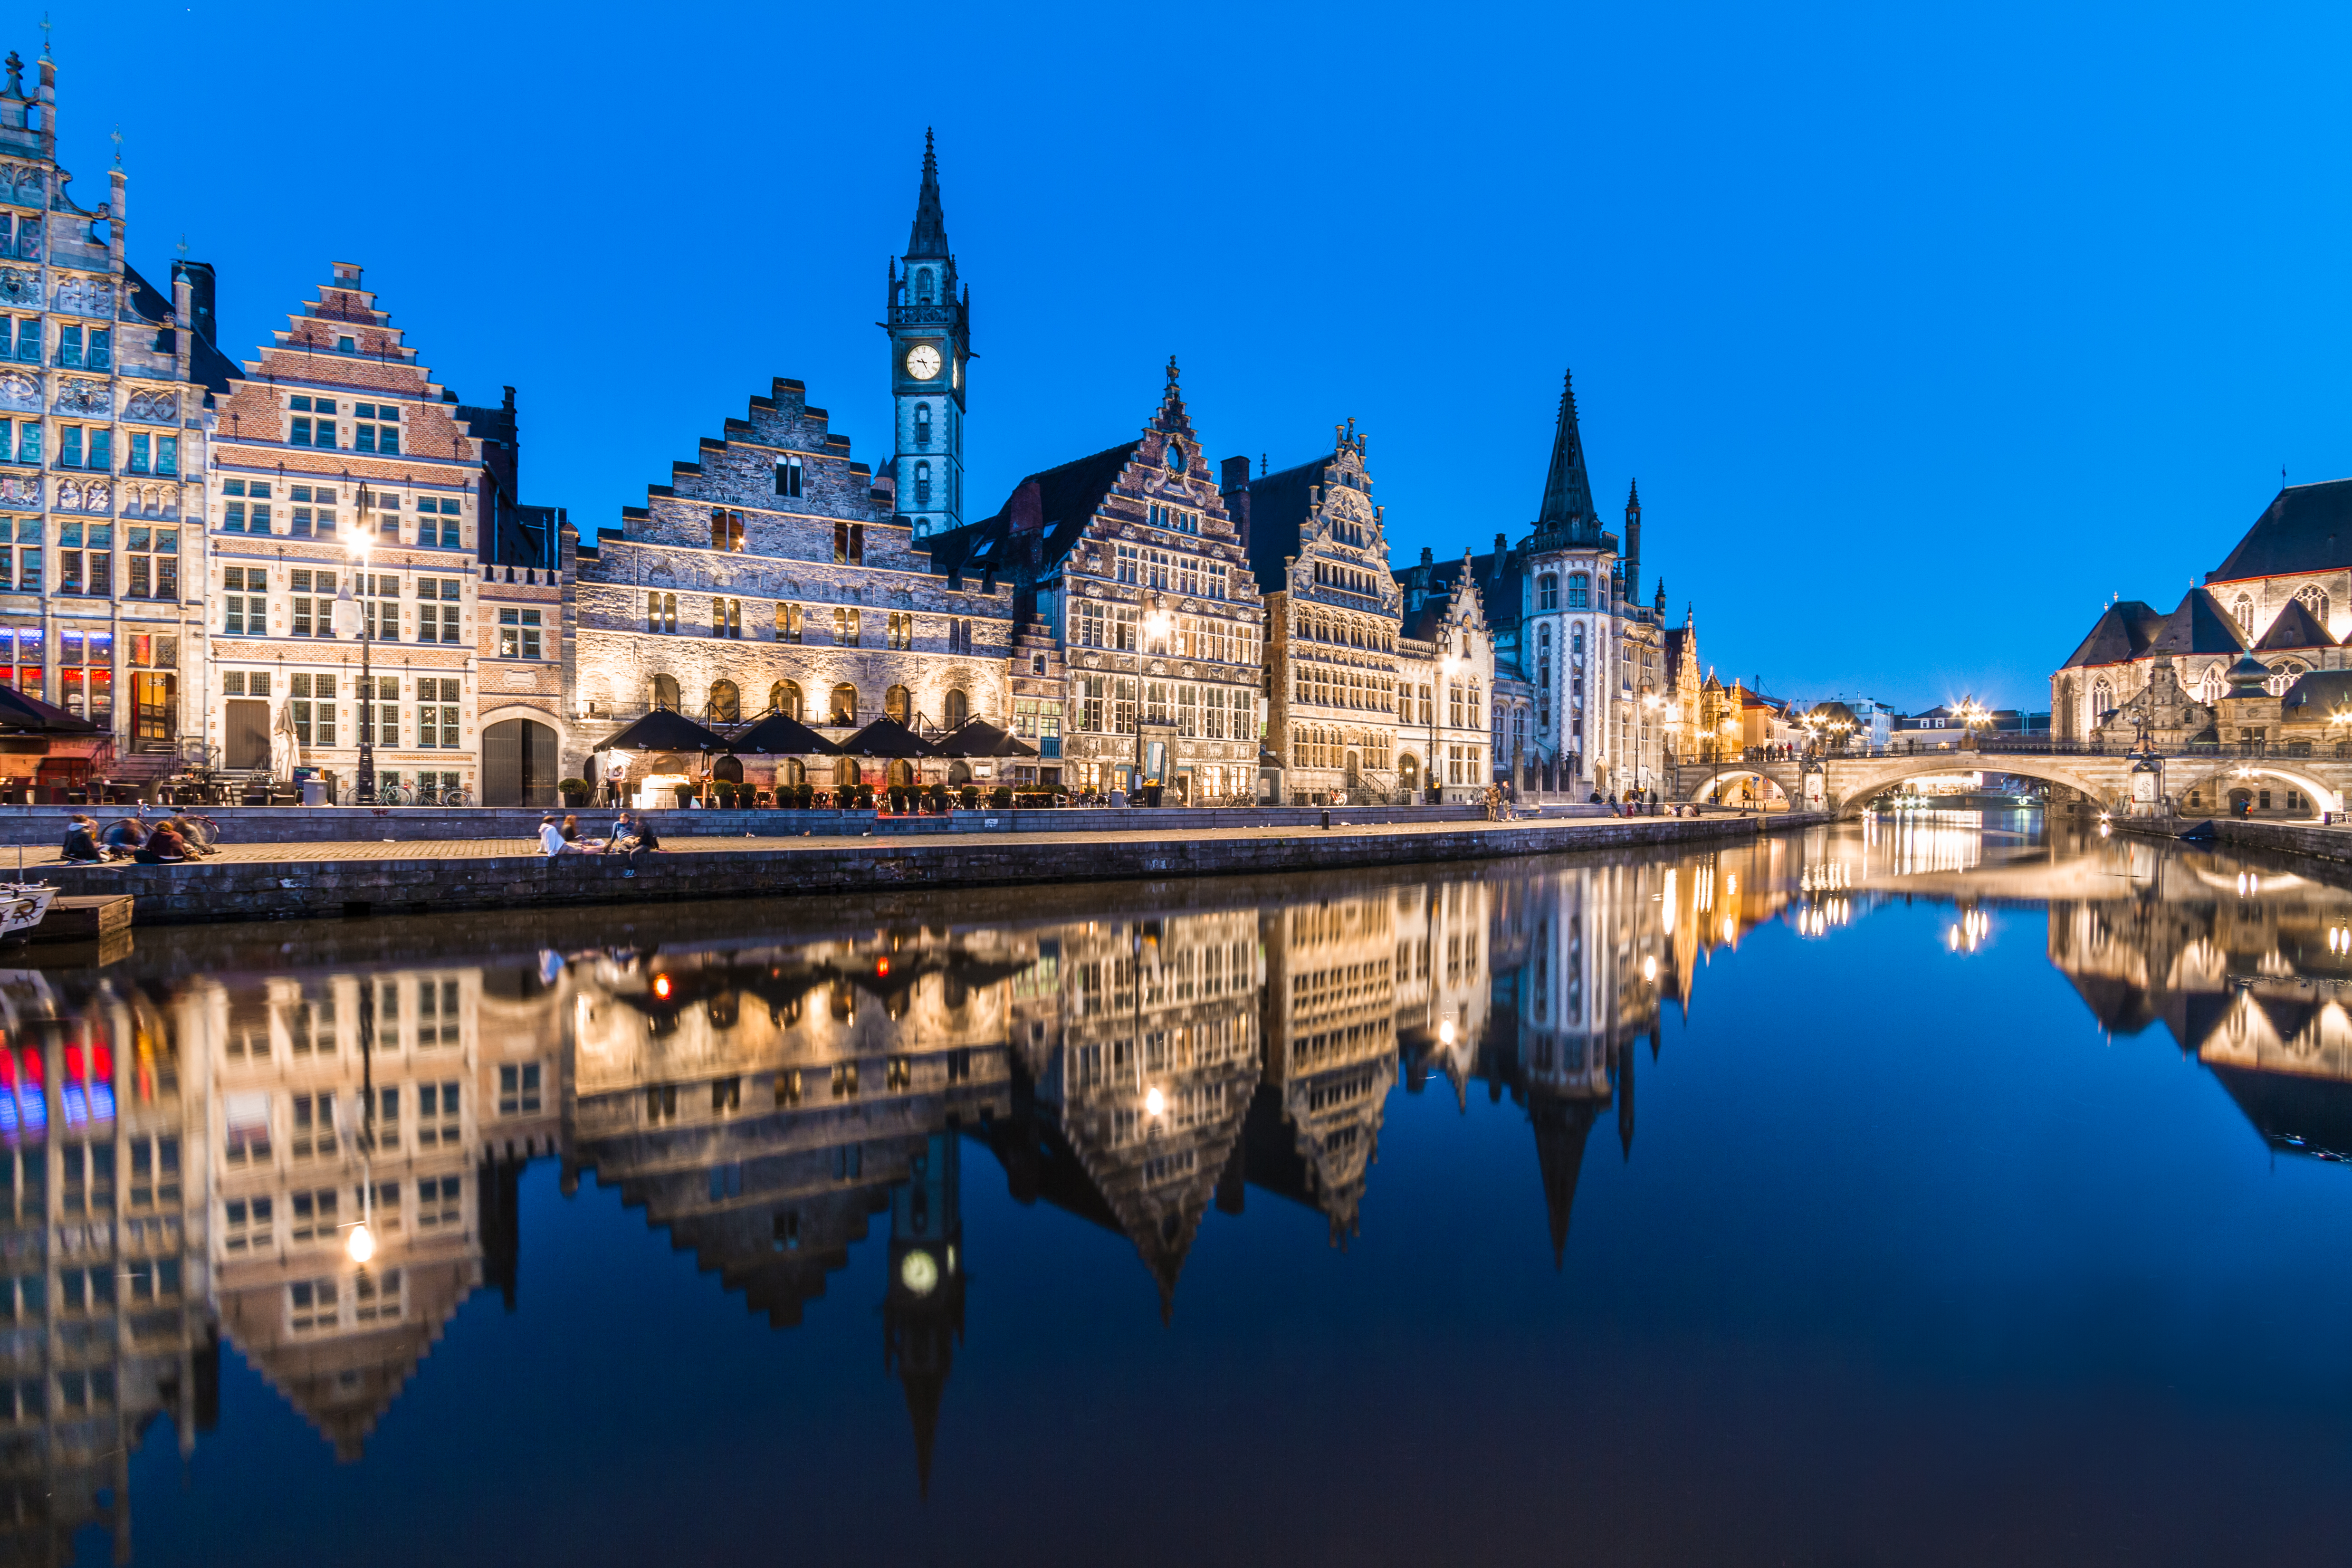 Nice wallpapers Ghent 4950x3300px